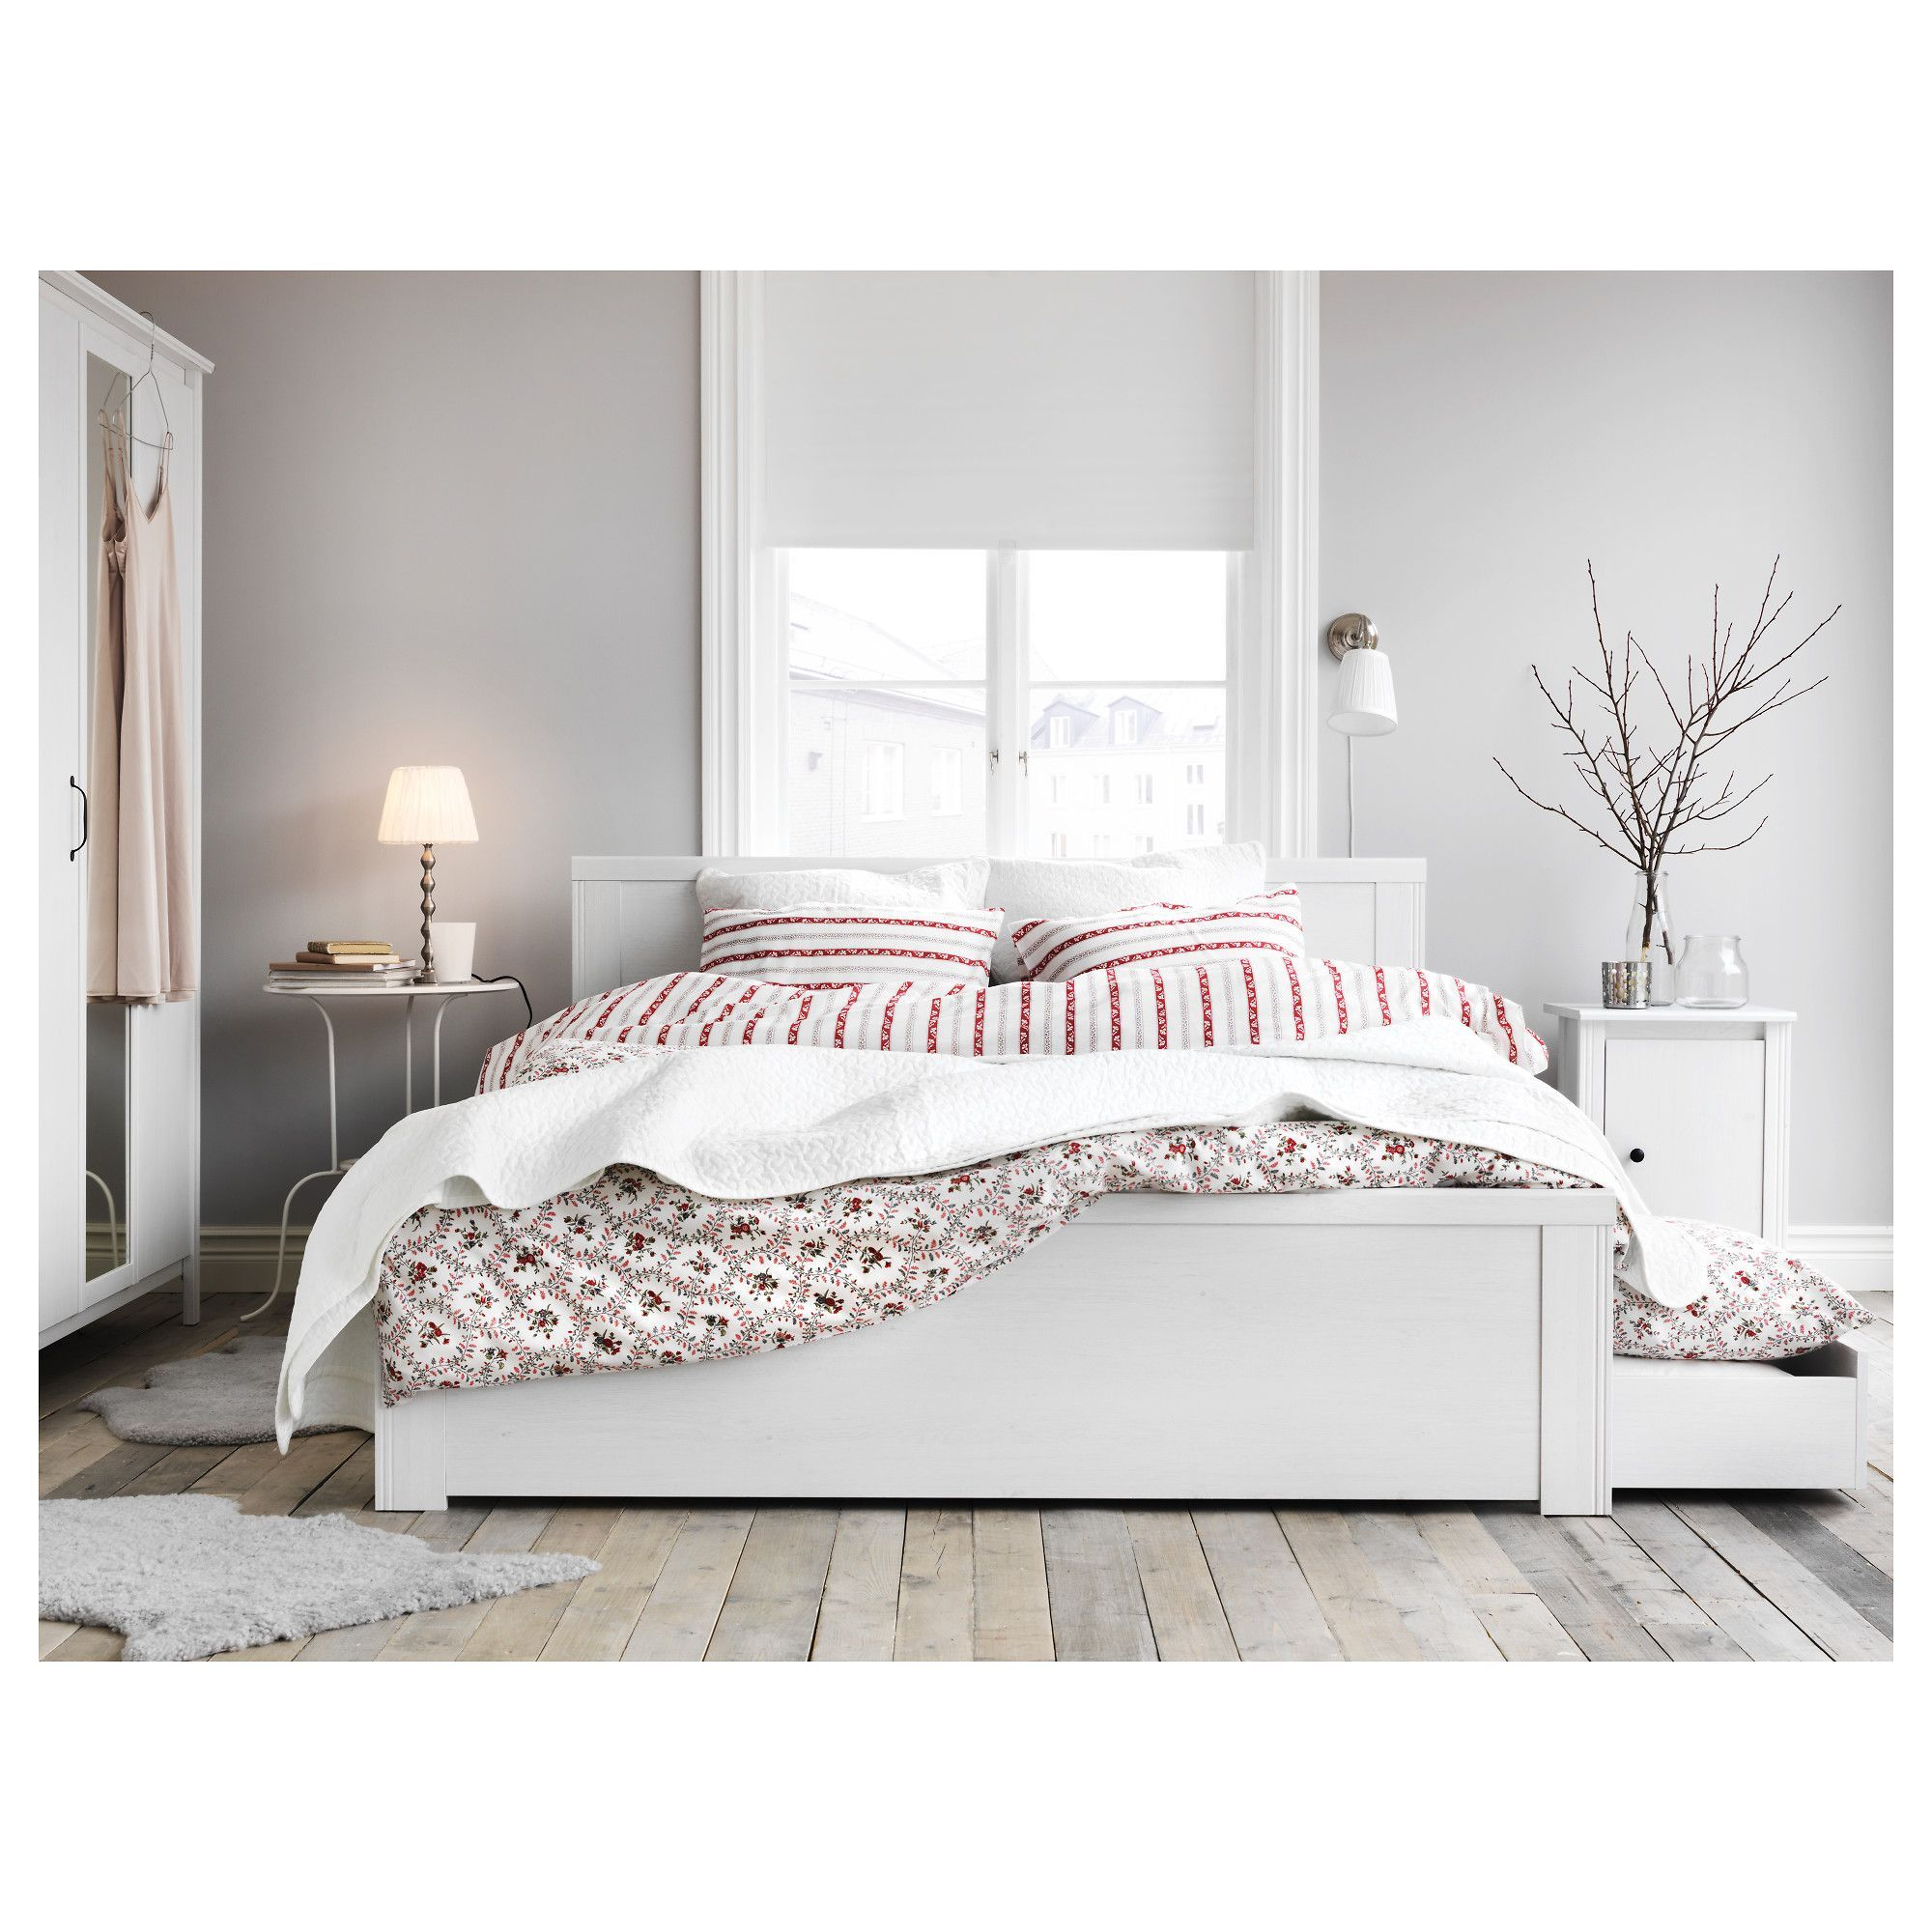 Ikea Brusali Bed Frame With 4 Storage Boxes White Bed Frame Ikea Bed Frames Bed Frame With Storage